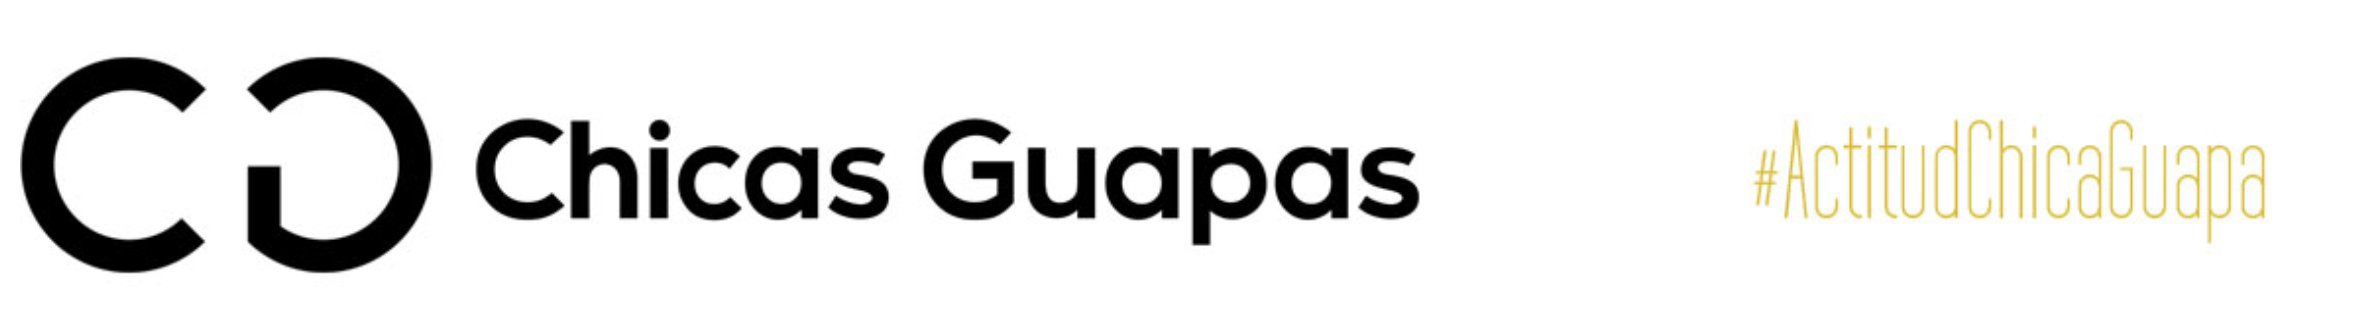 Chicas Guapas TV